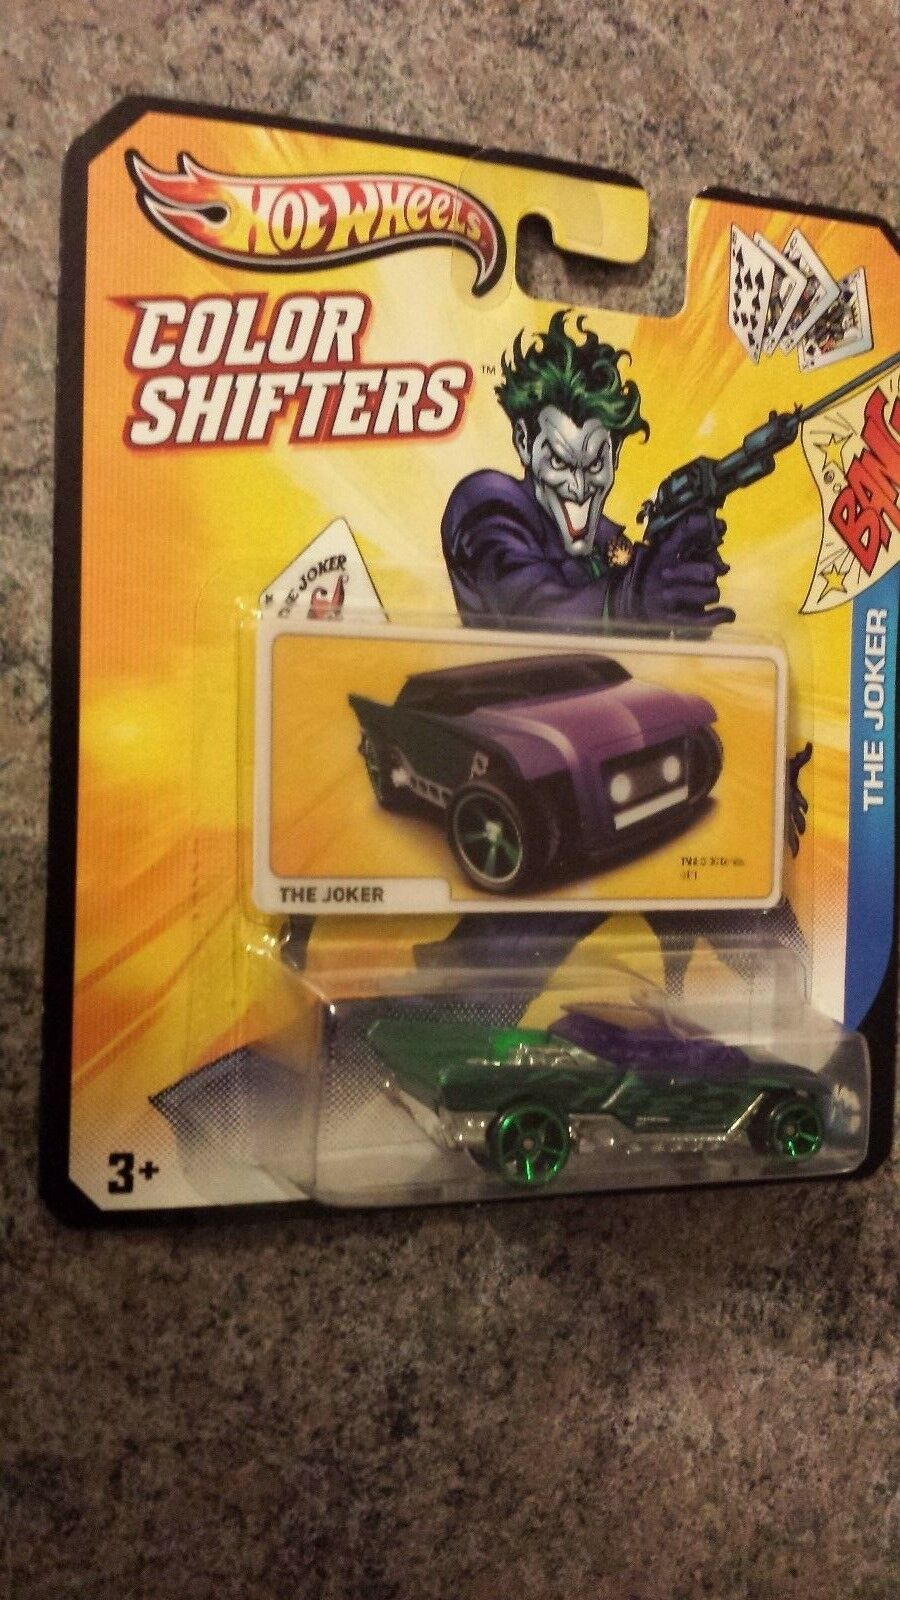 New THE JOKER Card CAR JESTER HOT WHEELS color shifters SEALED on special card